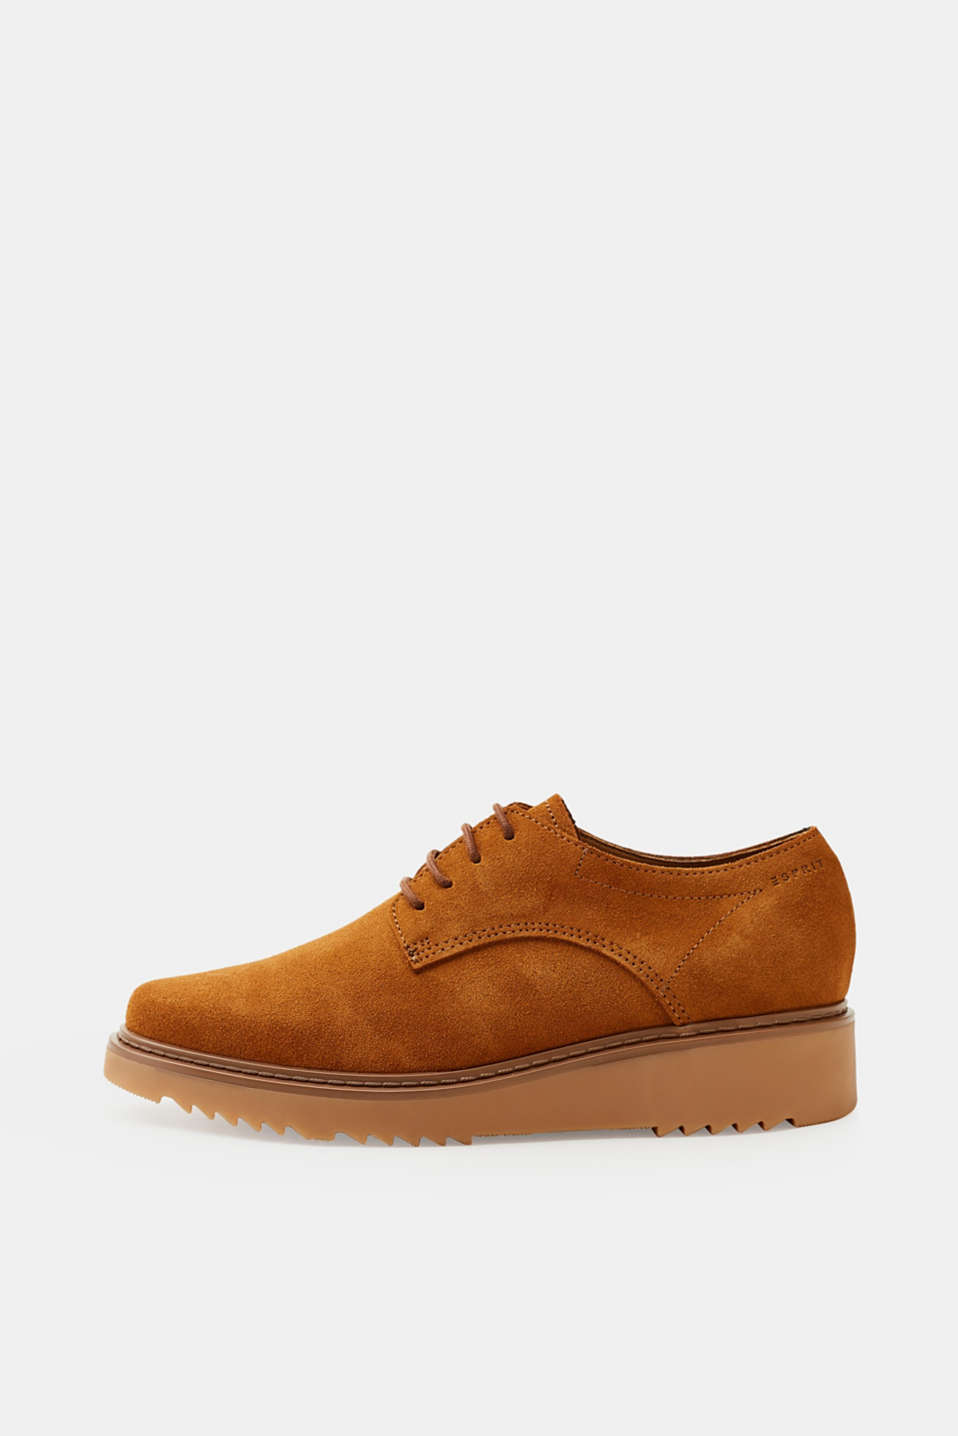 Esprit - Lace-up leather shoes with a platform sole